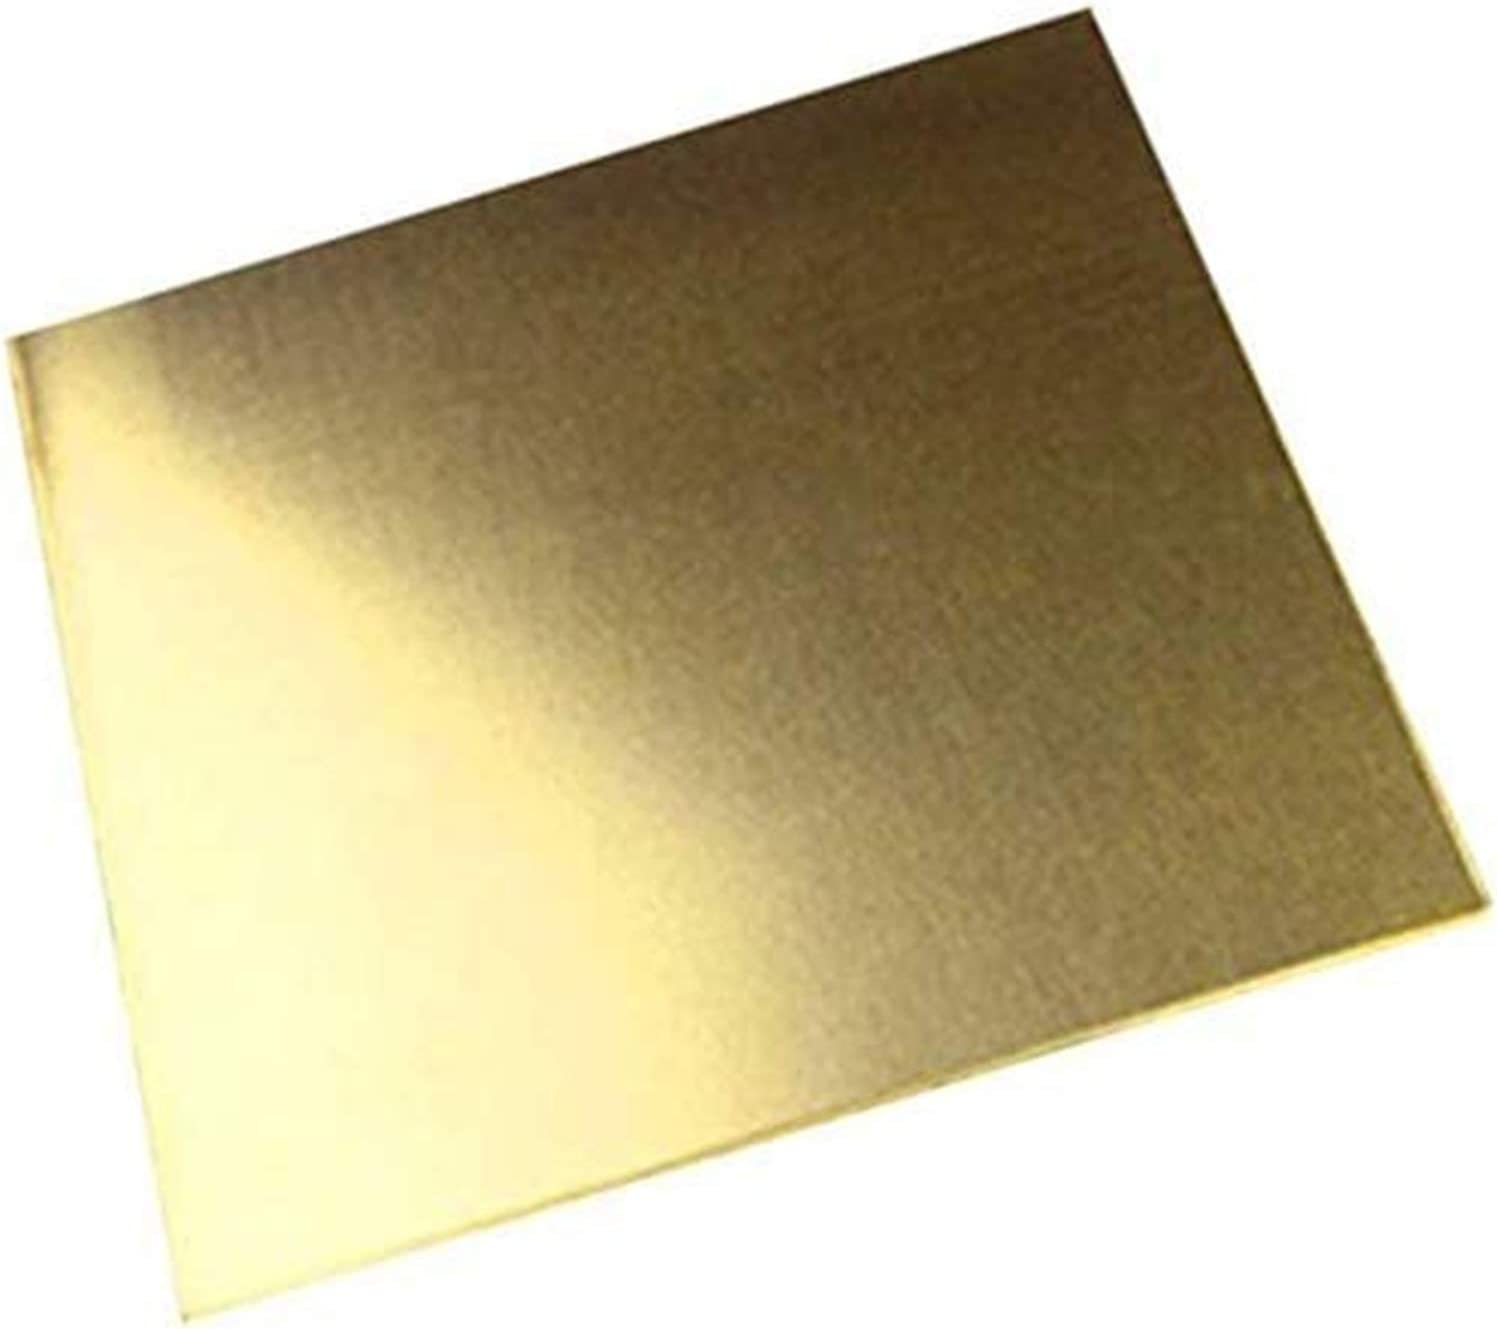 YUESFZ Pure Tulsa Mall Copper foil Horny Metal Genuine Plate